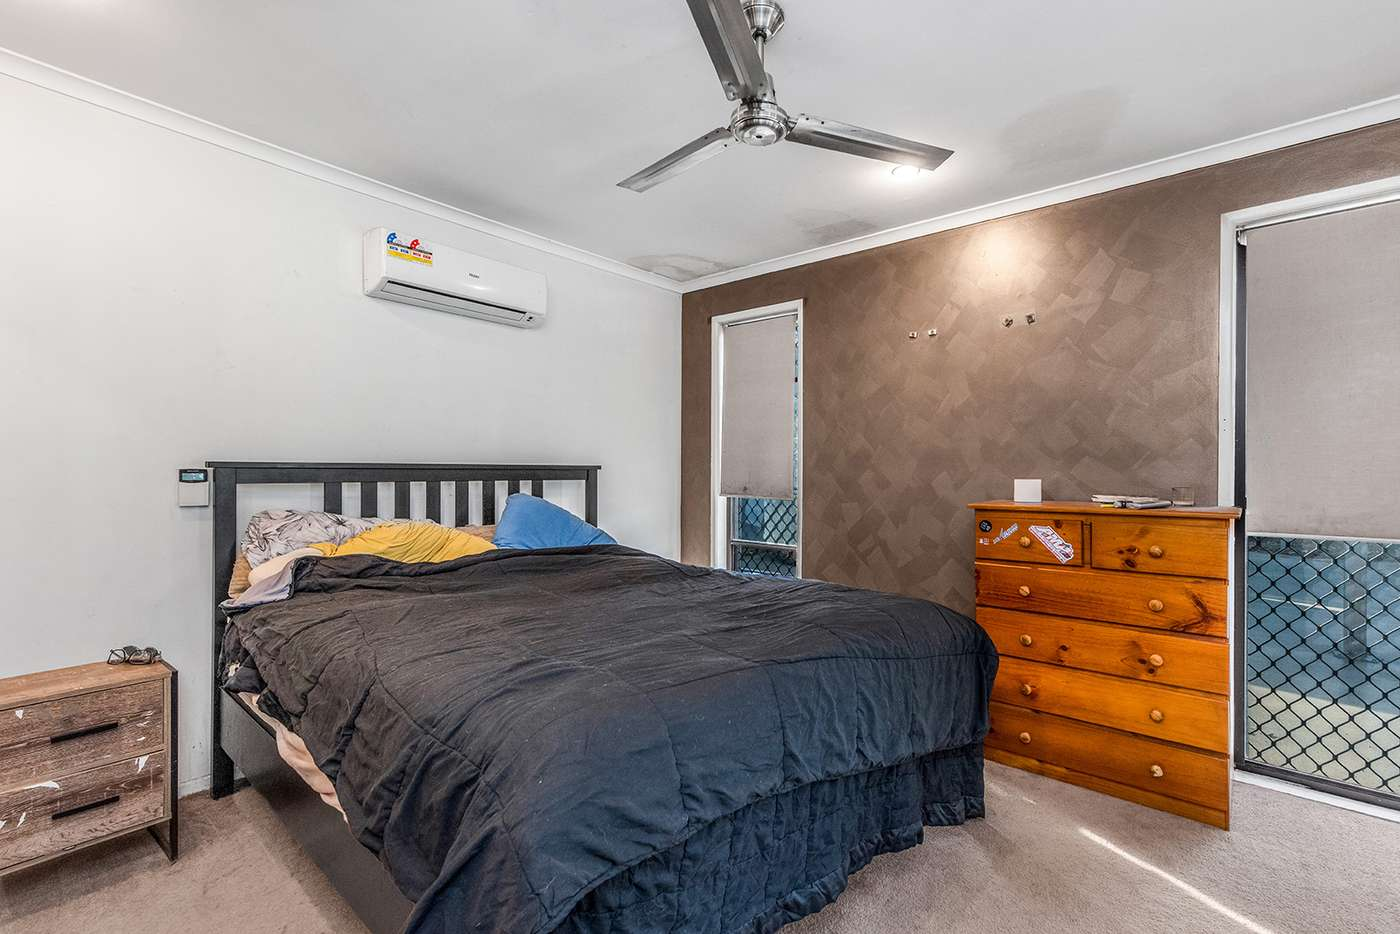 Sixth view of Homely house listing, 8 Sweetgum St, Hillcrest QLD 4118